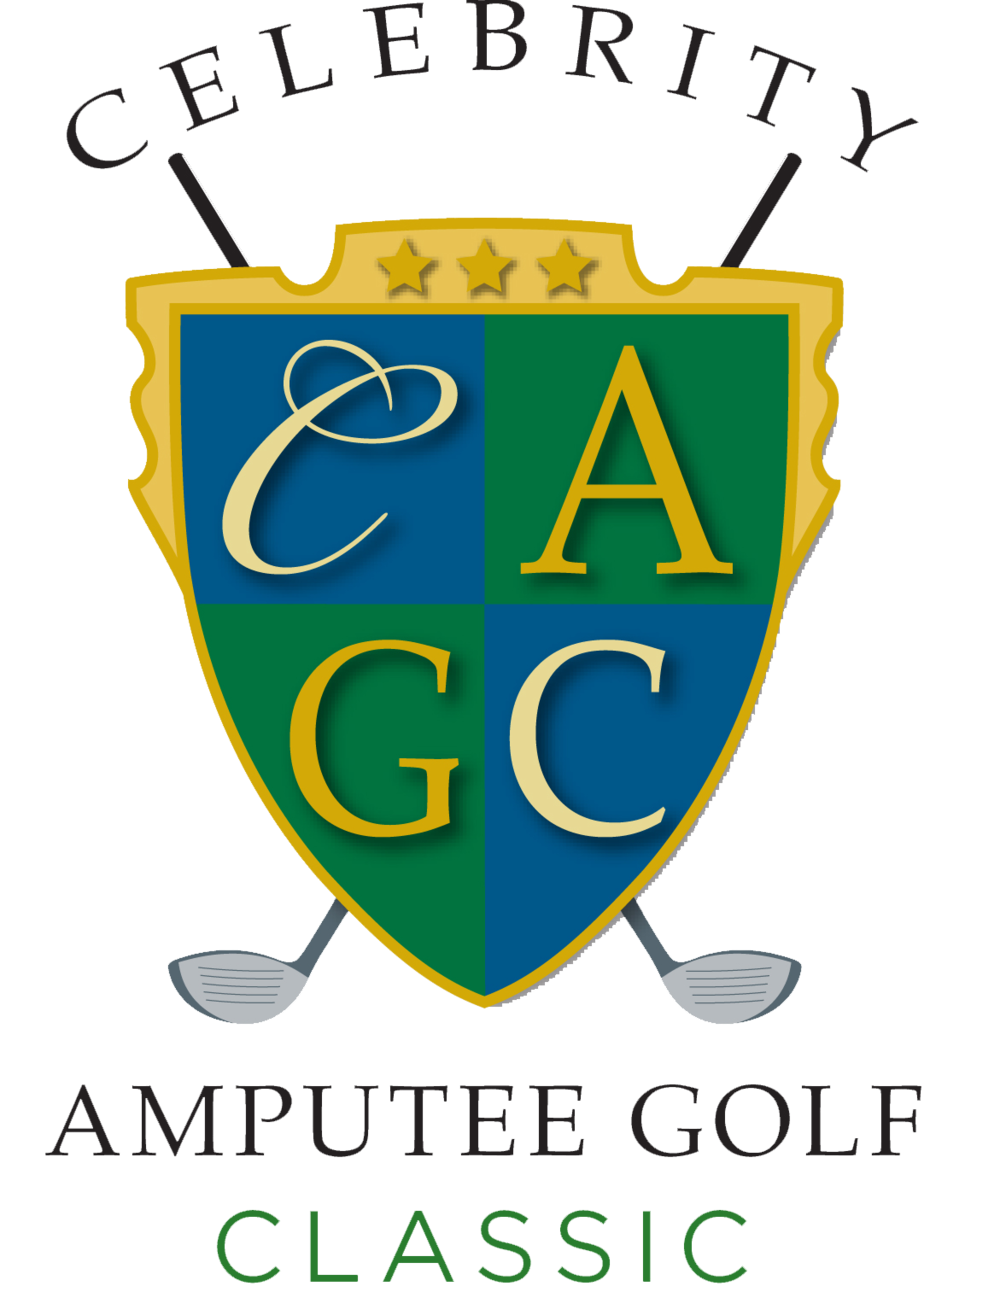 celebrity-amputee-golf-logo.png